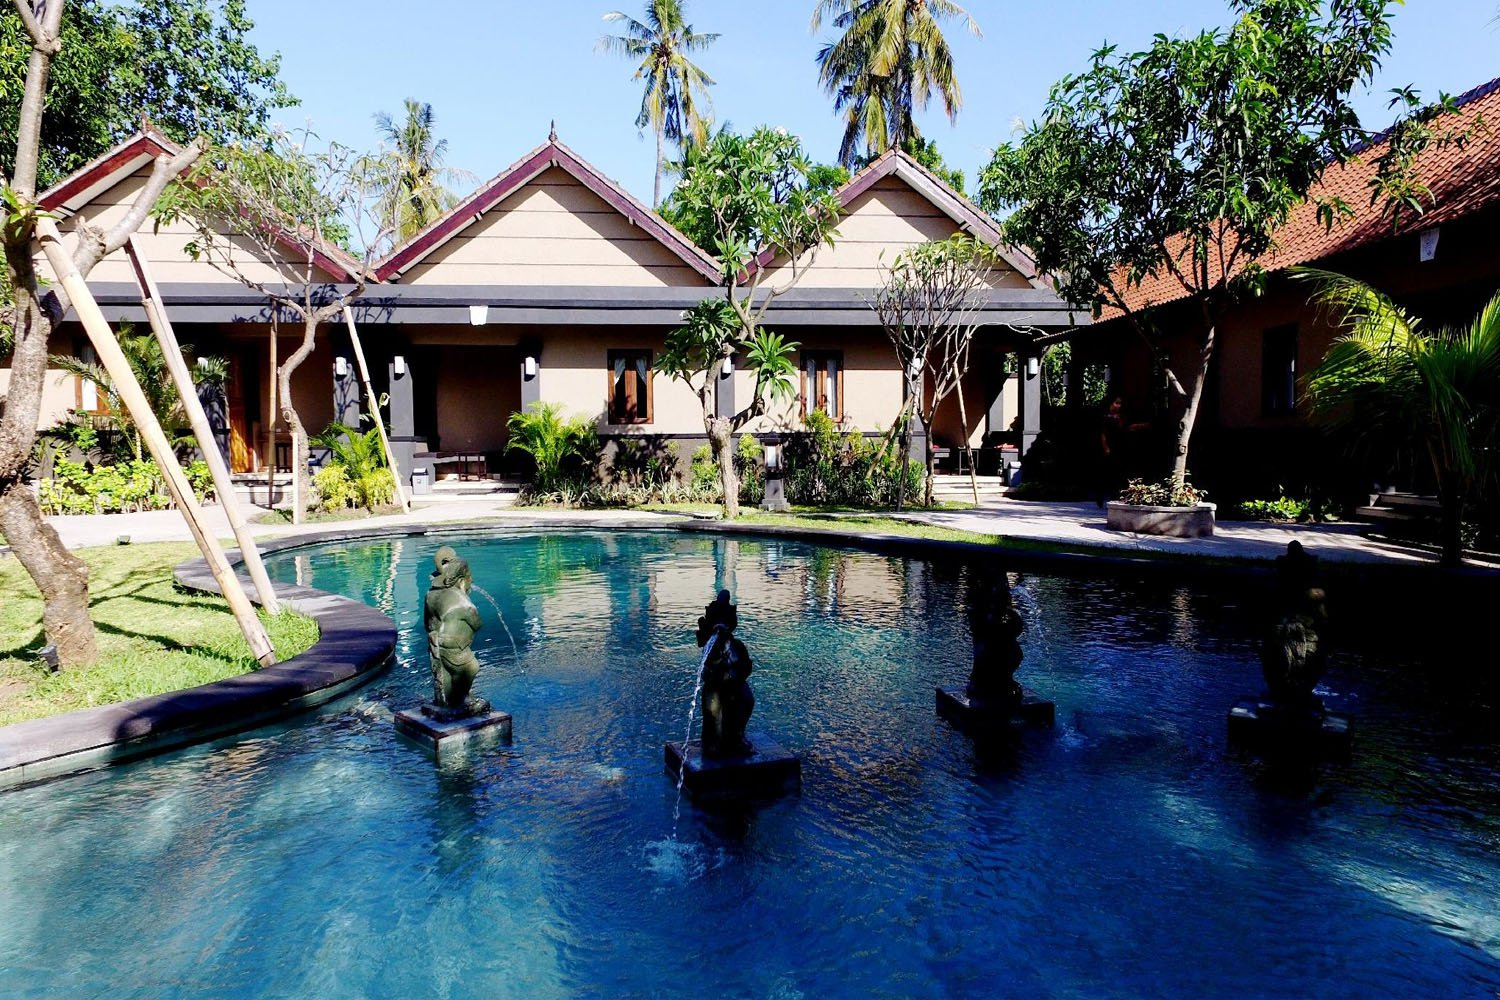 Decompress From Your Daily Activities At The Pool Villa Of Love In Krabi